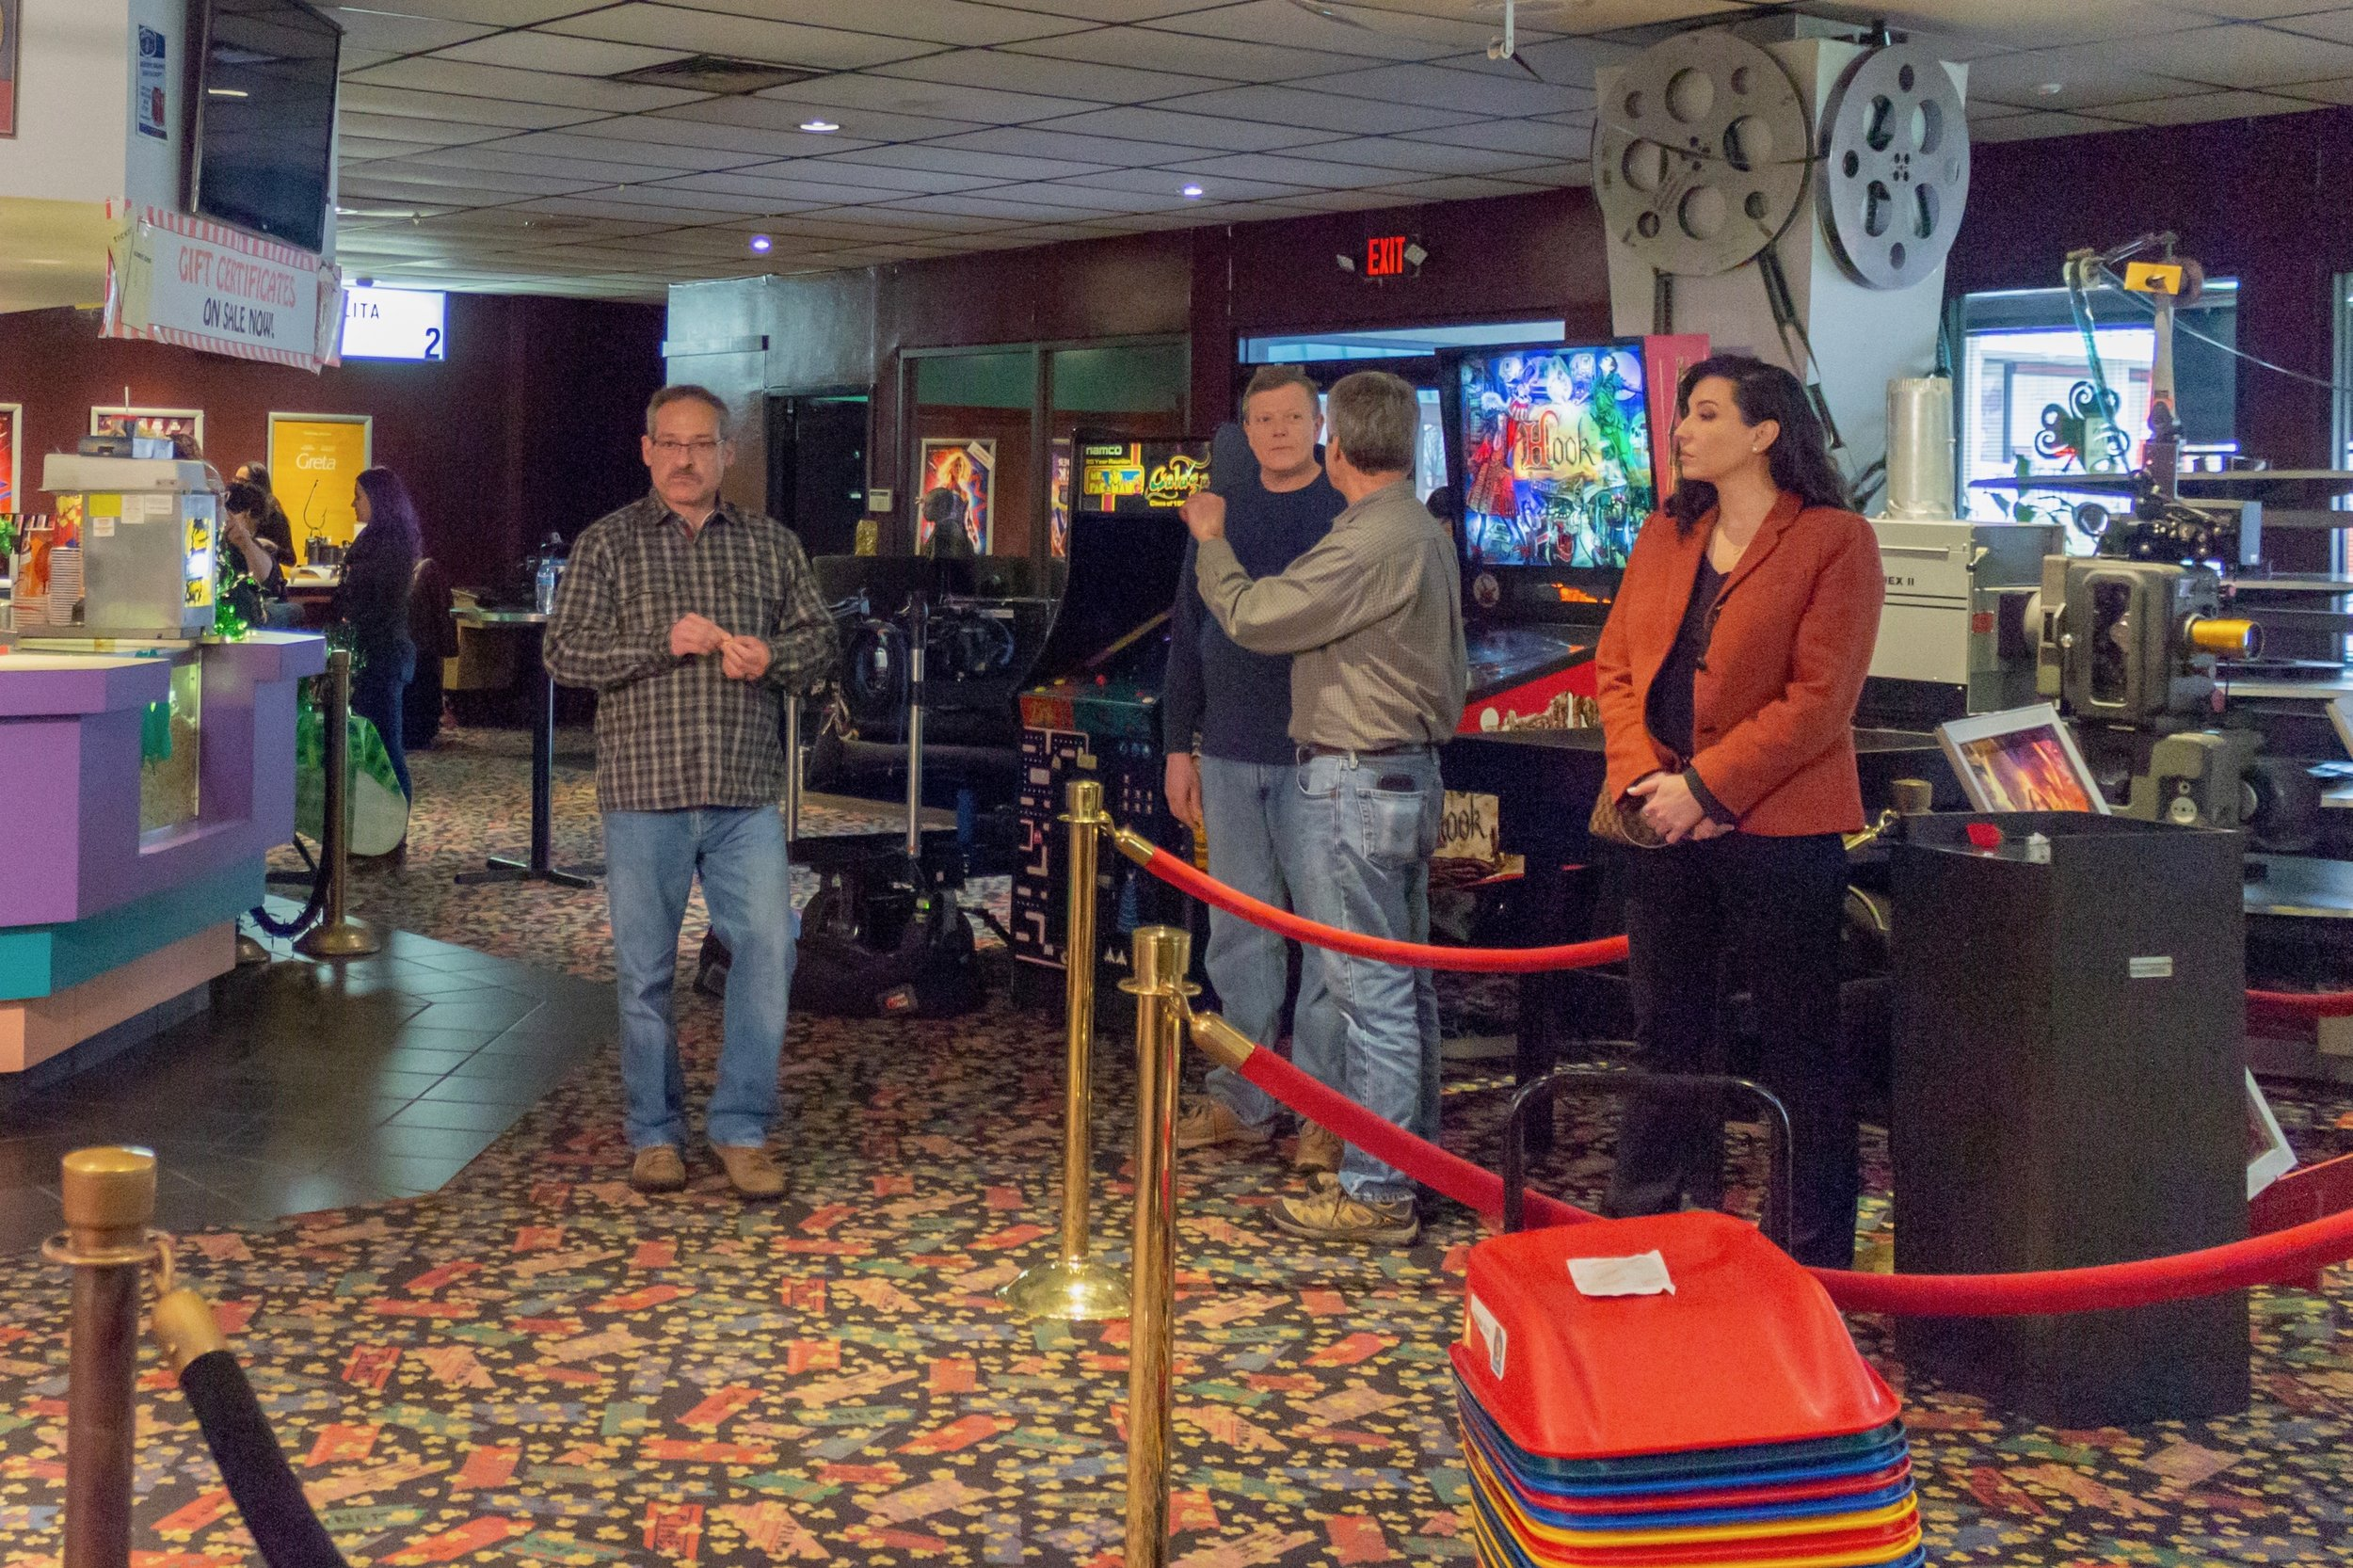 Left to right: Steven P. Neilson, executive producer of  Oh Crappy Day , checks out the lobby of Mission Valley Cinema, while Duane Therriault, our 2nd assistant director, gets extras ready for the next shot. Photo by Jonathan Okafo. Copyright © 2019 Dagtype Films, LLC.